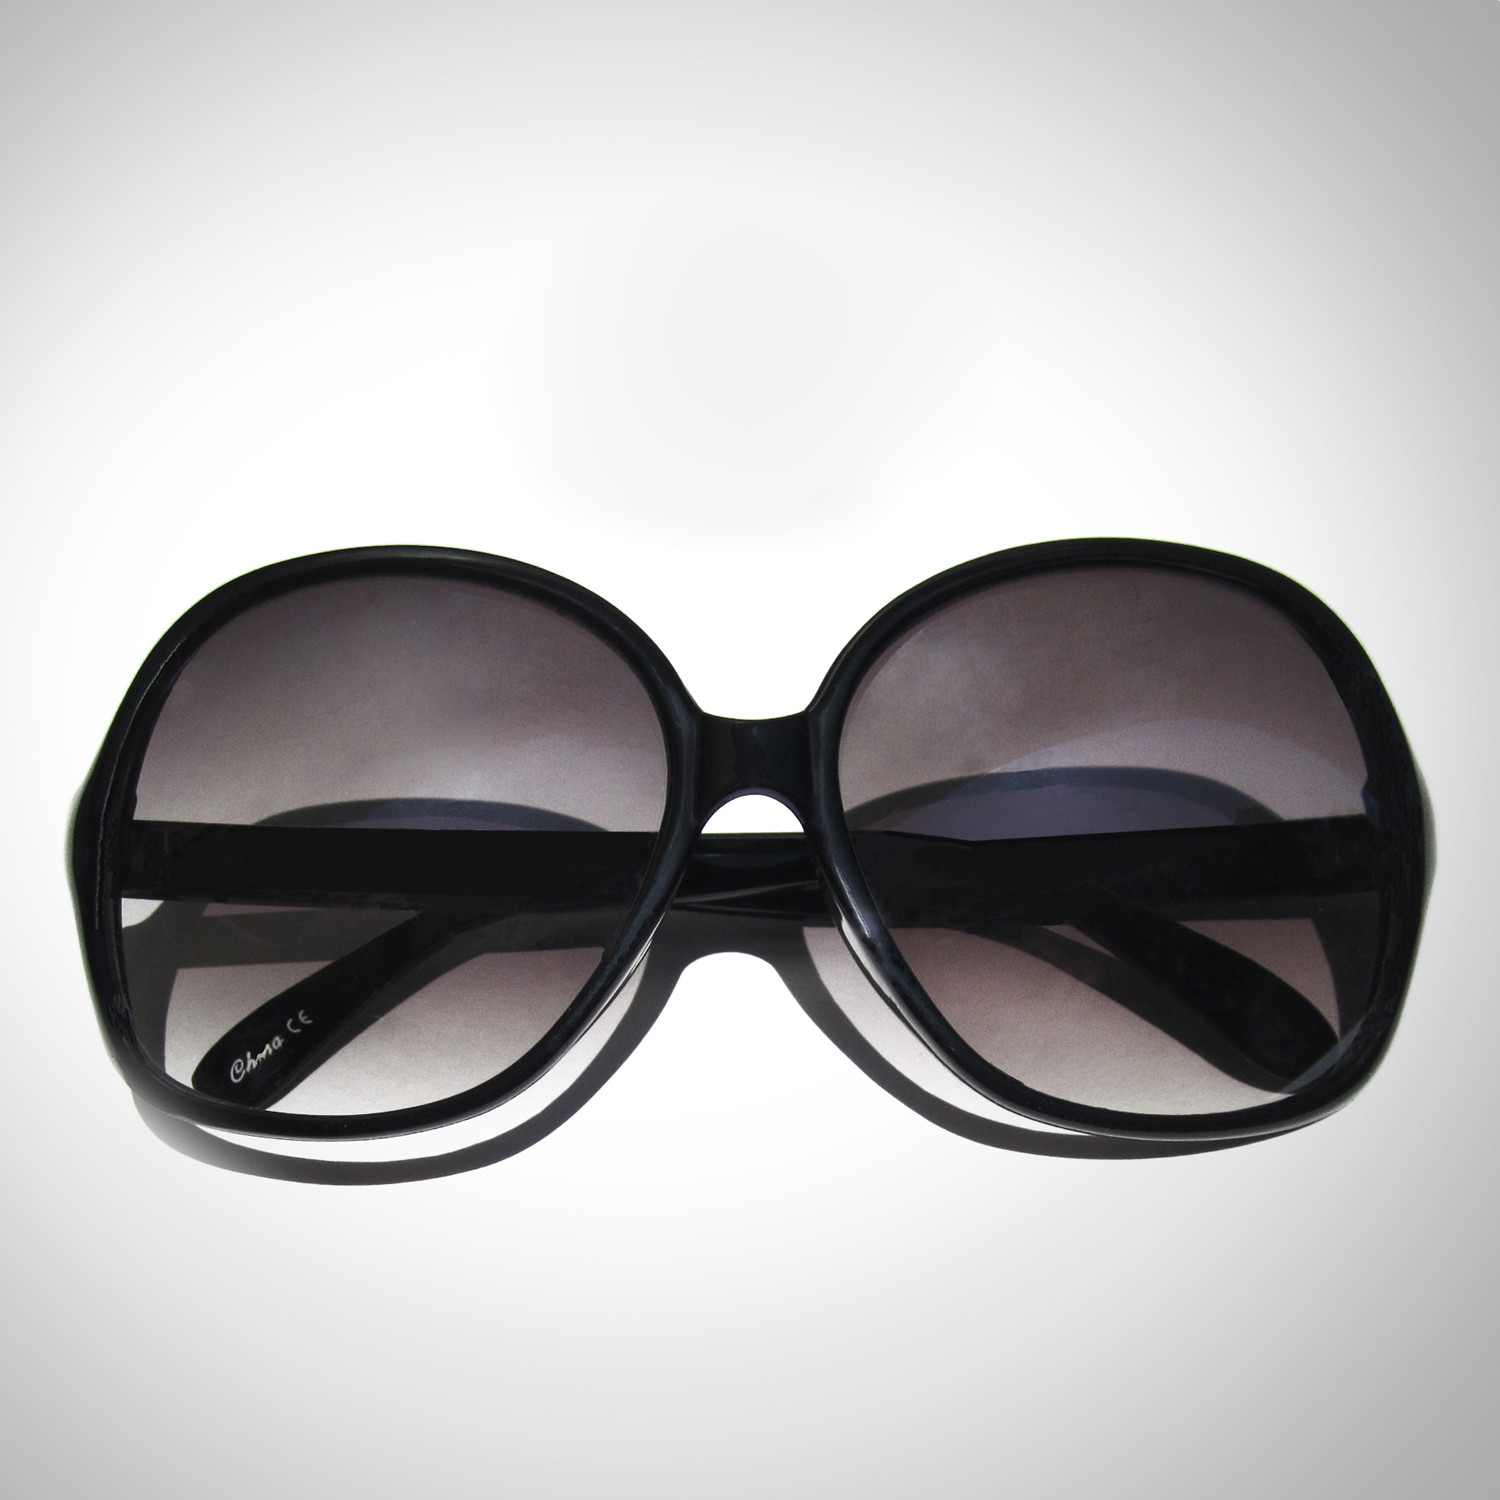 Oversized Sunglasses Tinted Black 2 Lnoir Touch Of Modern Frame Kacamata Eyeglasses Retro Style